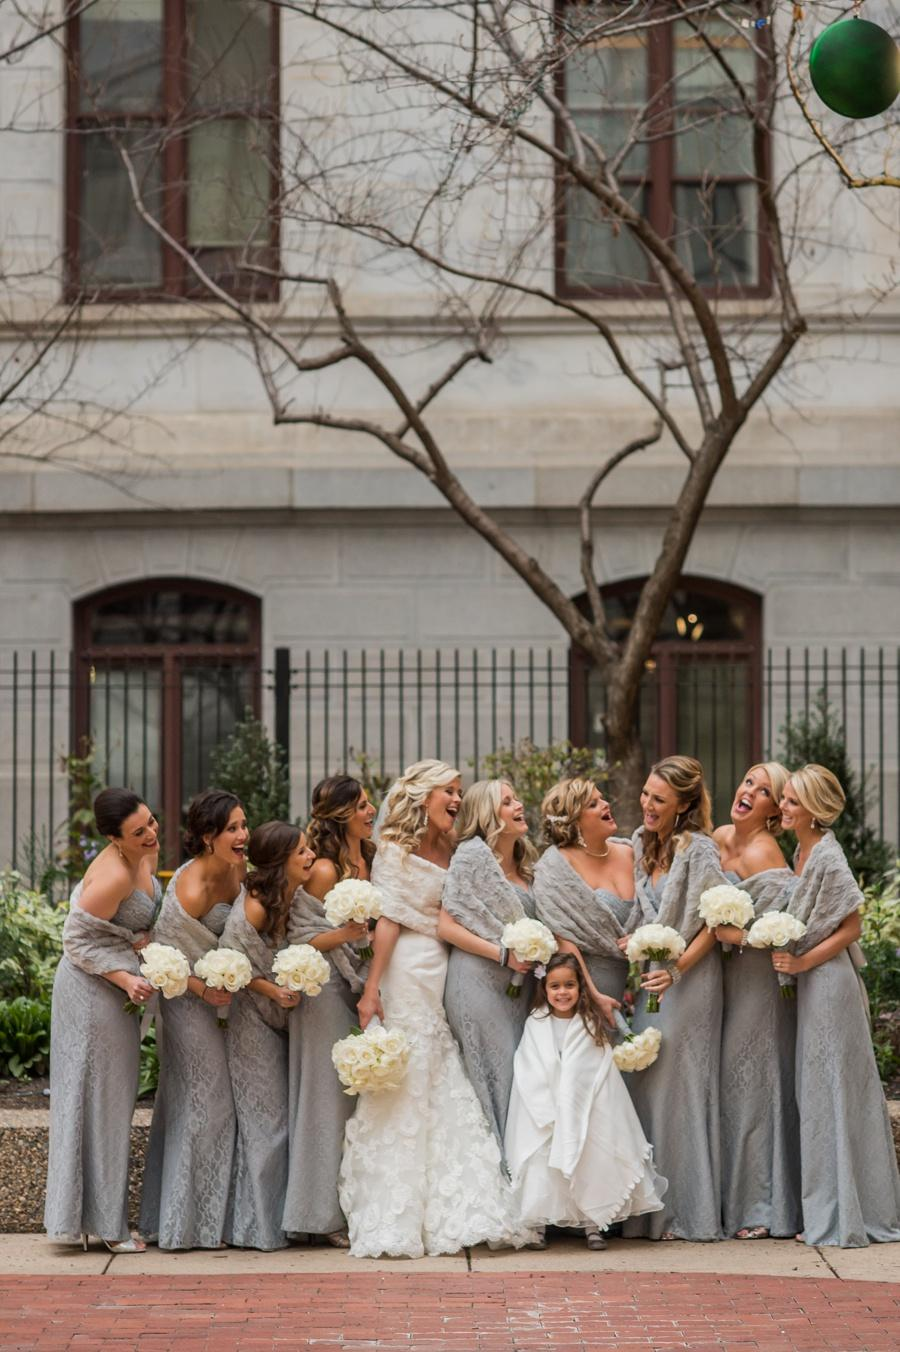 melissa-kelly-philadelphia-wedding-photographer-061